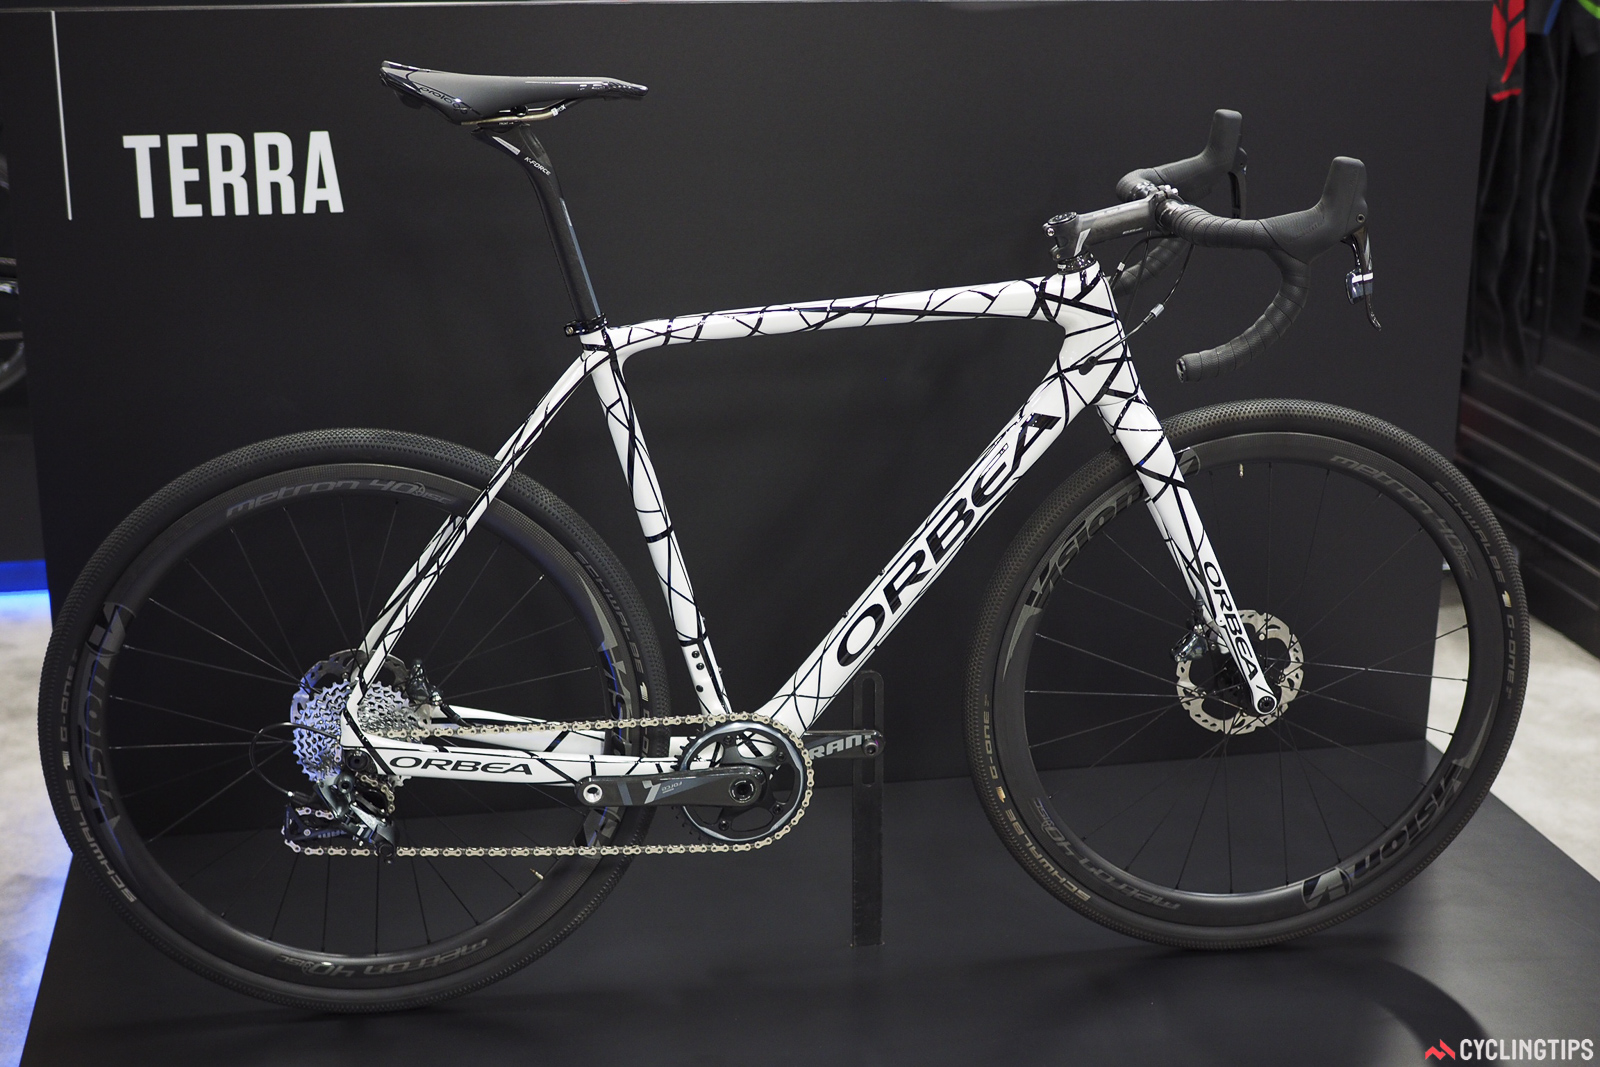 Orbea previewed a new gravel bike called the Terra. Further information won't be available for a few months, but it looks to be well in keeping with the competition. Starting price will be US$3,000.